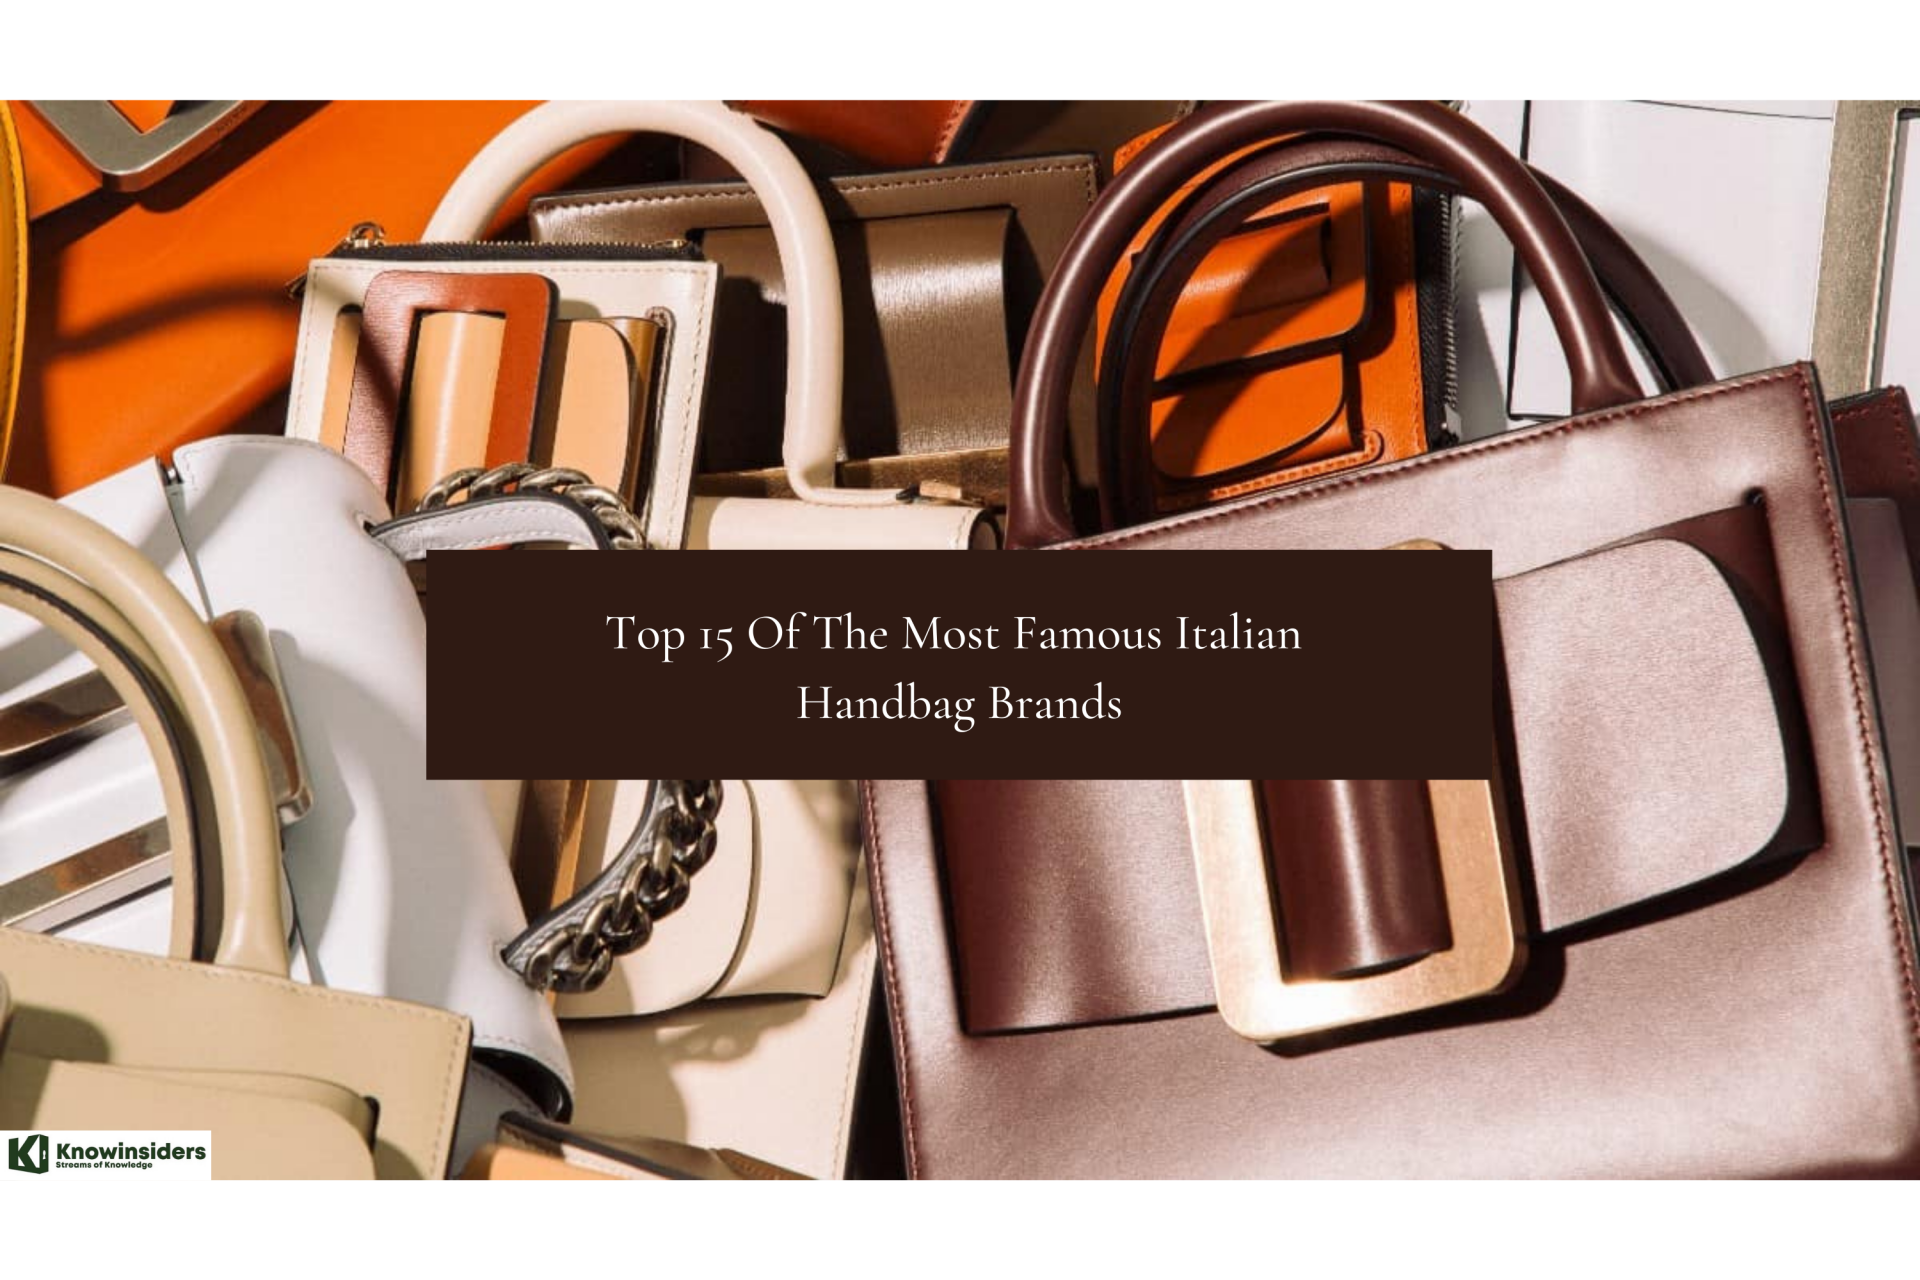 Top 15 Most Famous Italian Handbag Brands